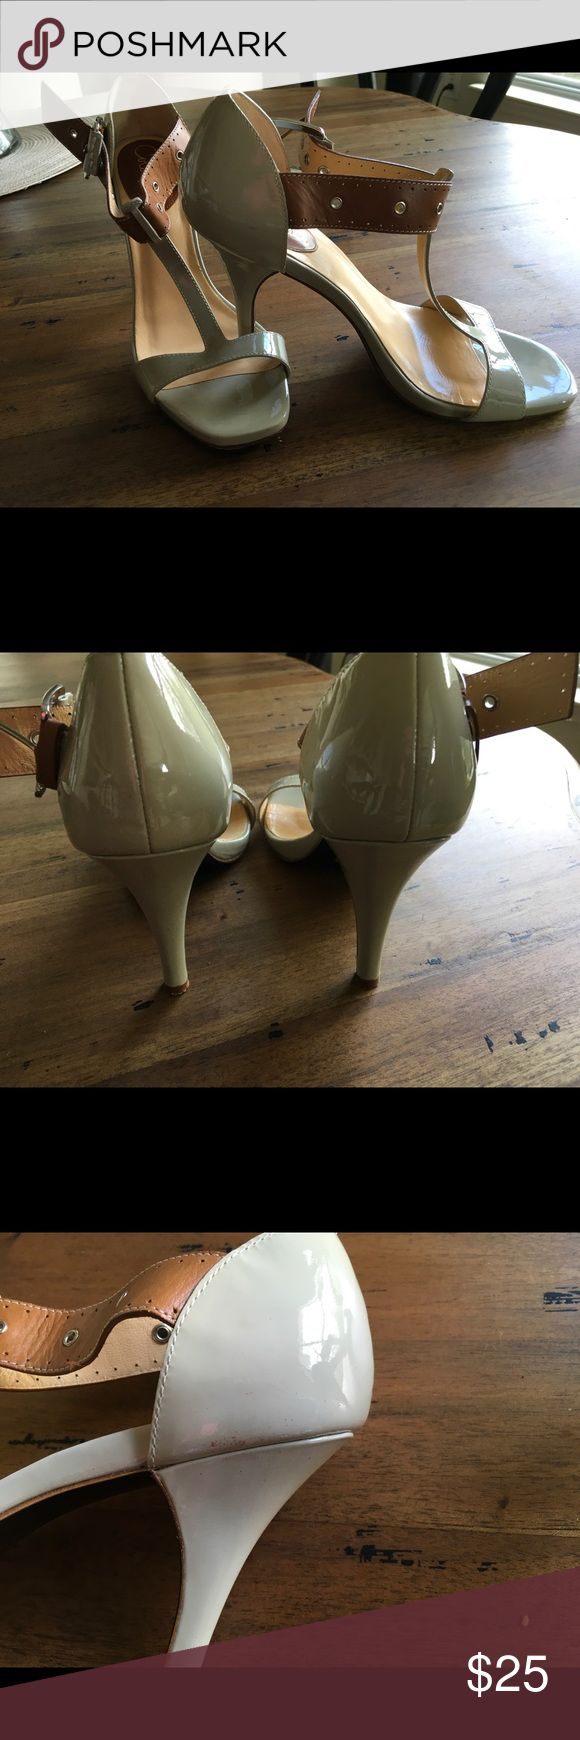 Cole Haan Nike T-Strap Heels Beautiful and super comfortable grey and tan heels. Nike system! Cole Haan Shoes Heels